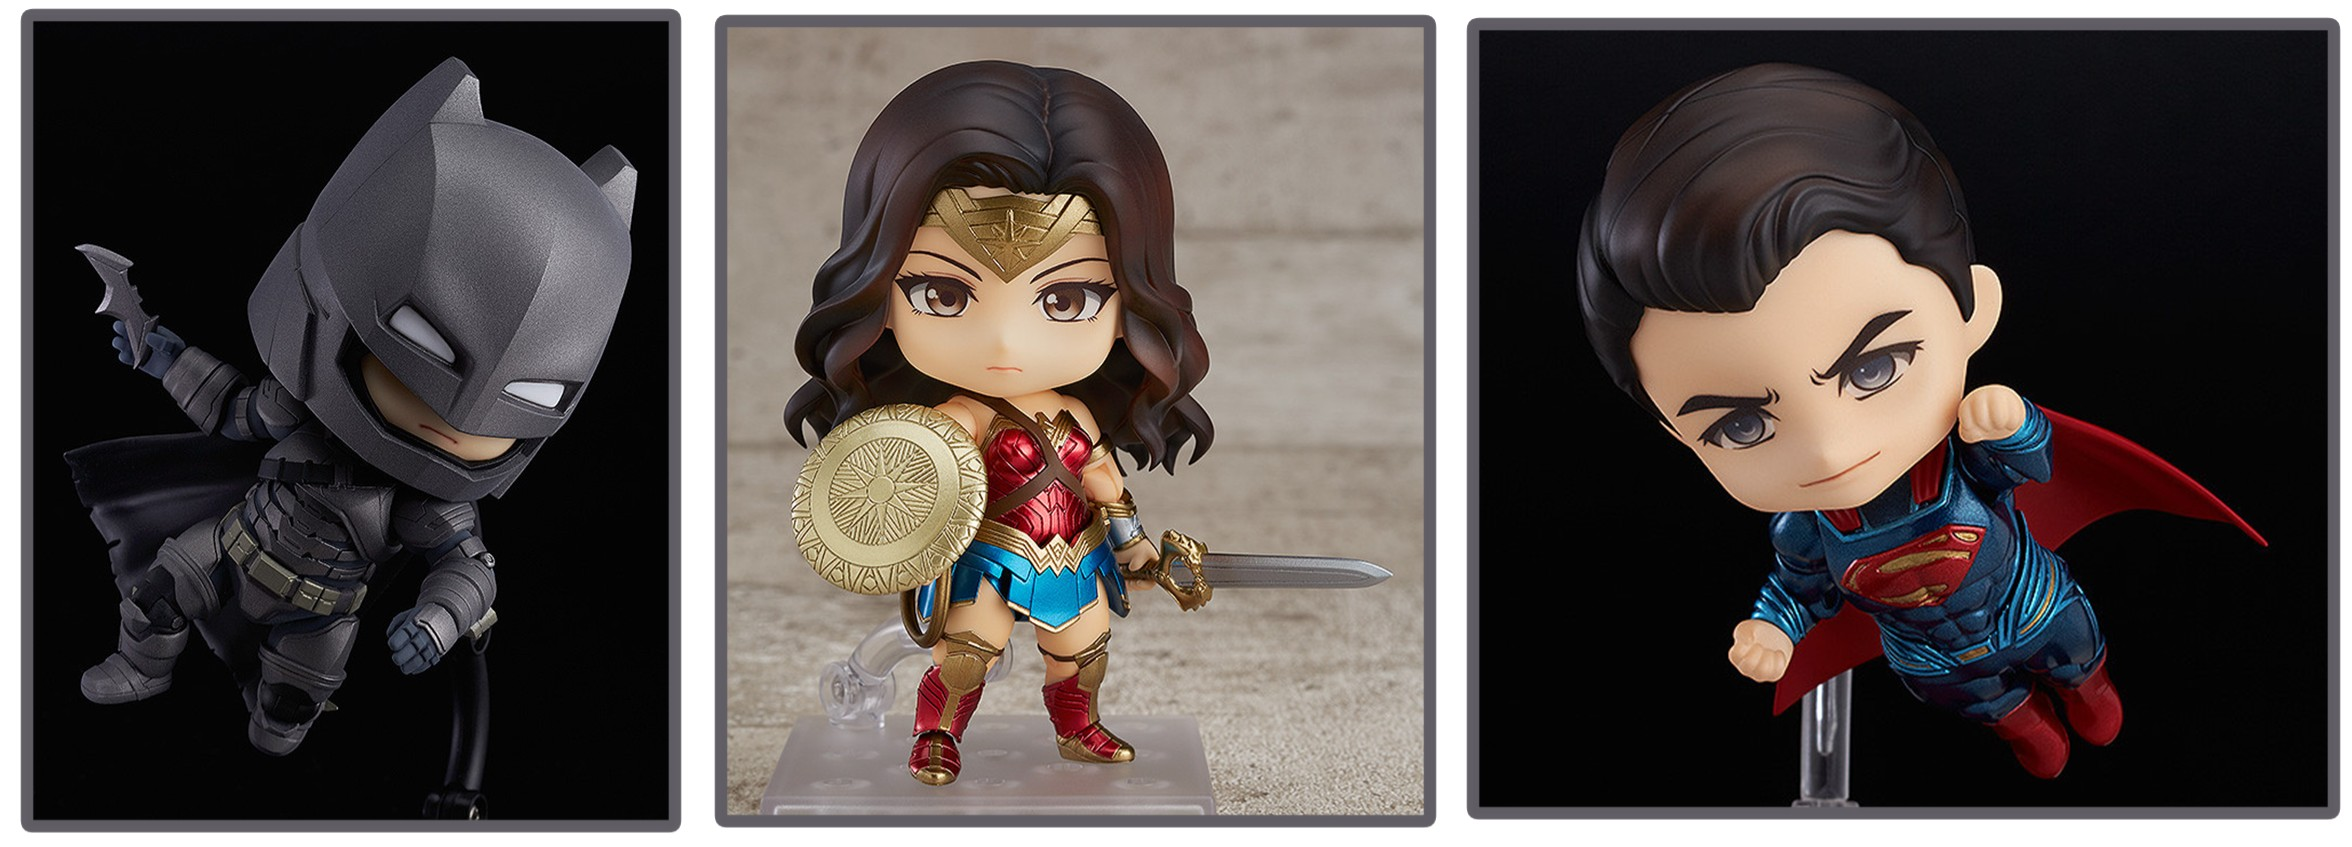 Good Smile Company – Nendoroid: Batman, Wonder Woman, & Superman Figures